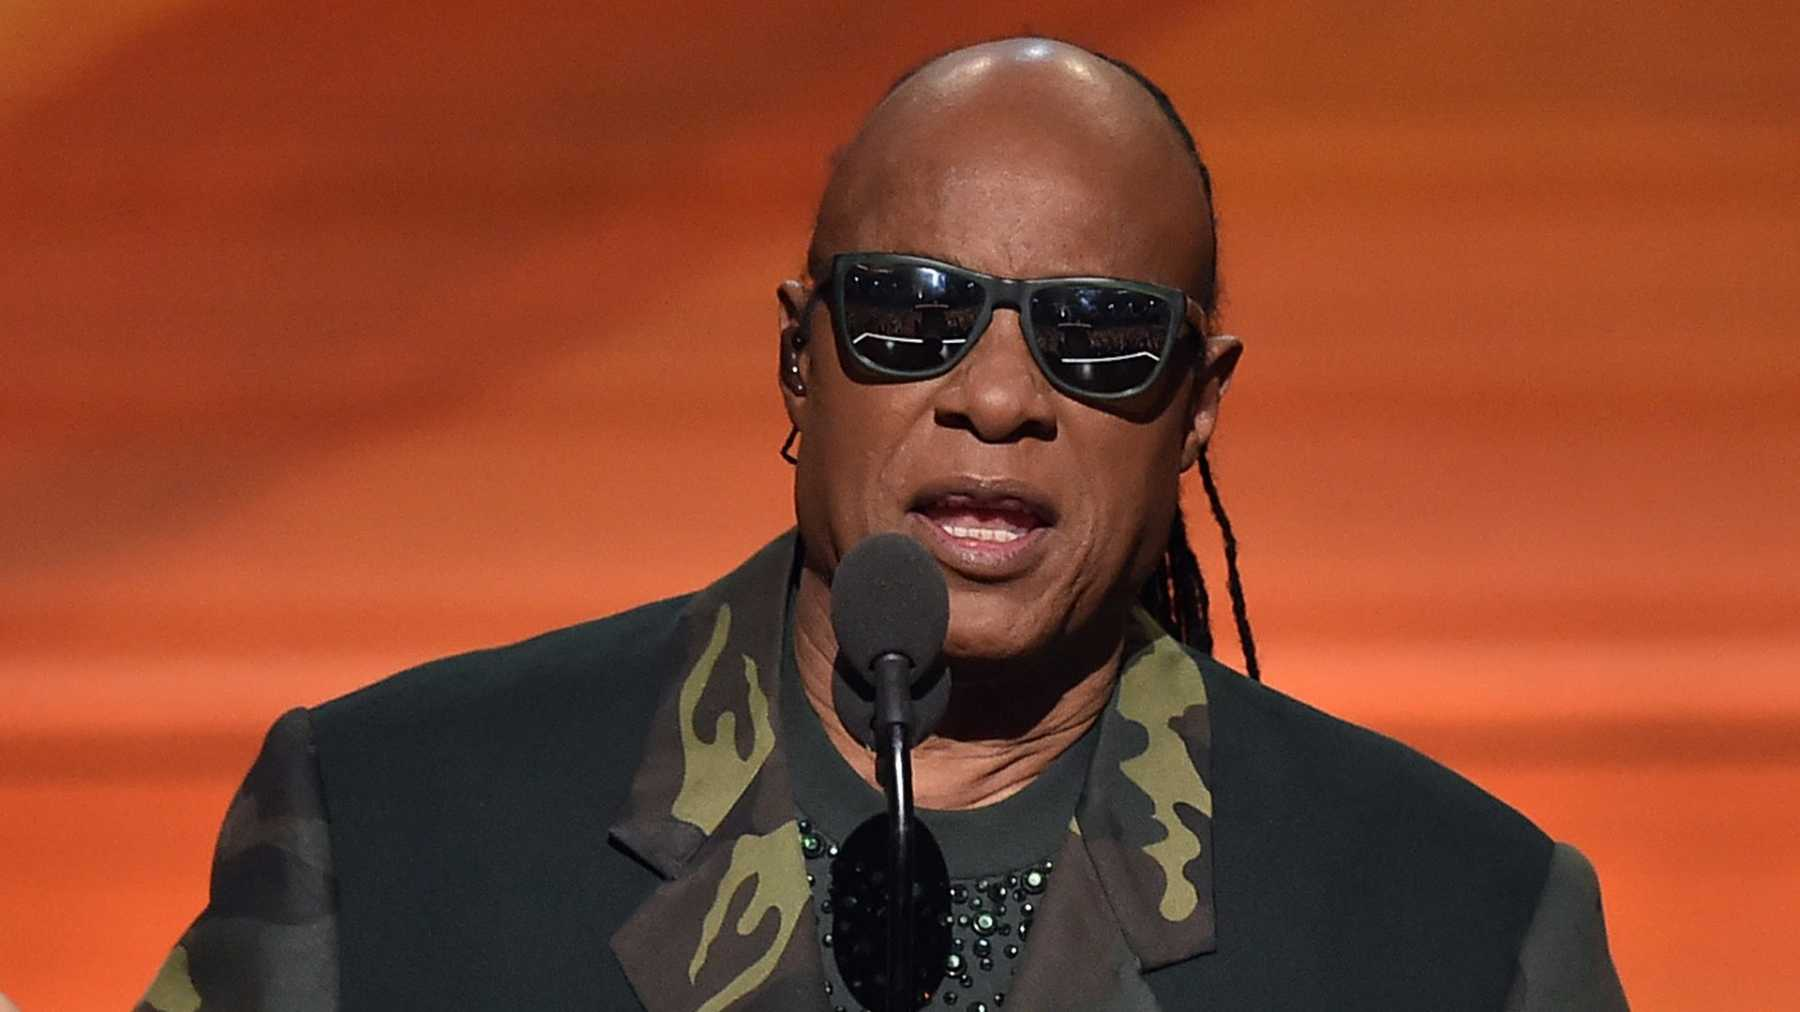 Stevie Wonder And TMZ Talk About His Eyesight   Music   PopWrapped Stevie Wonder And TMZ Talk About His Eyesight   Stevie Wonder